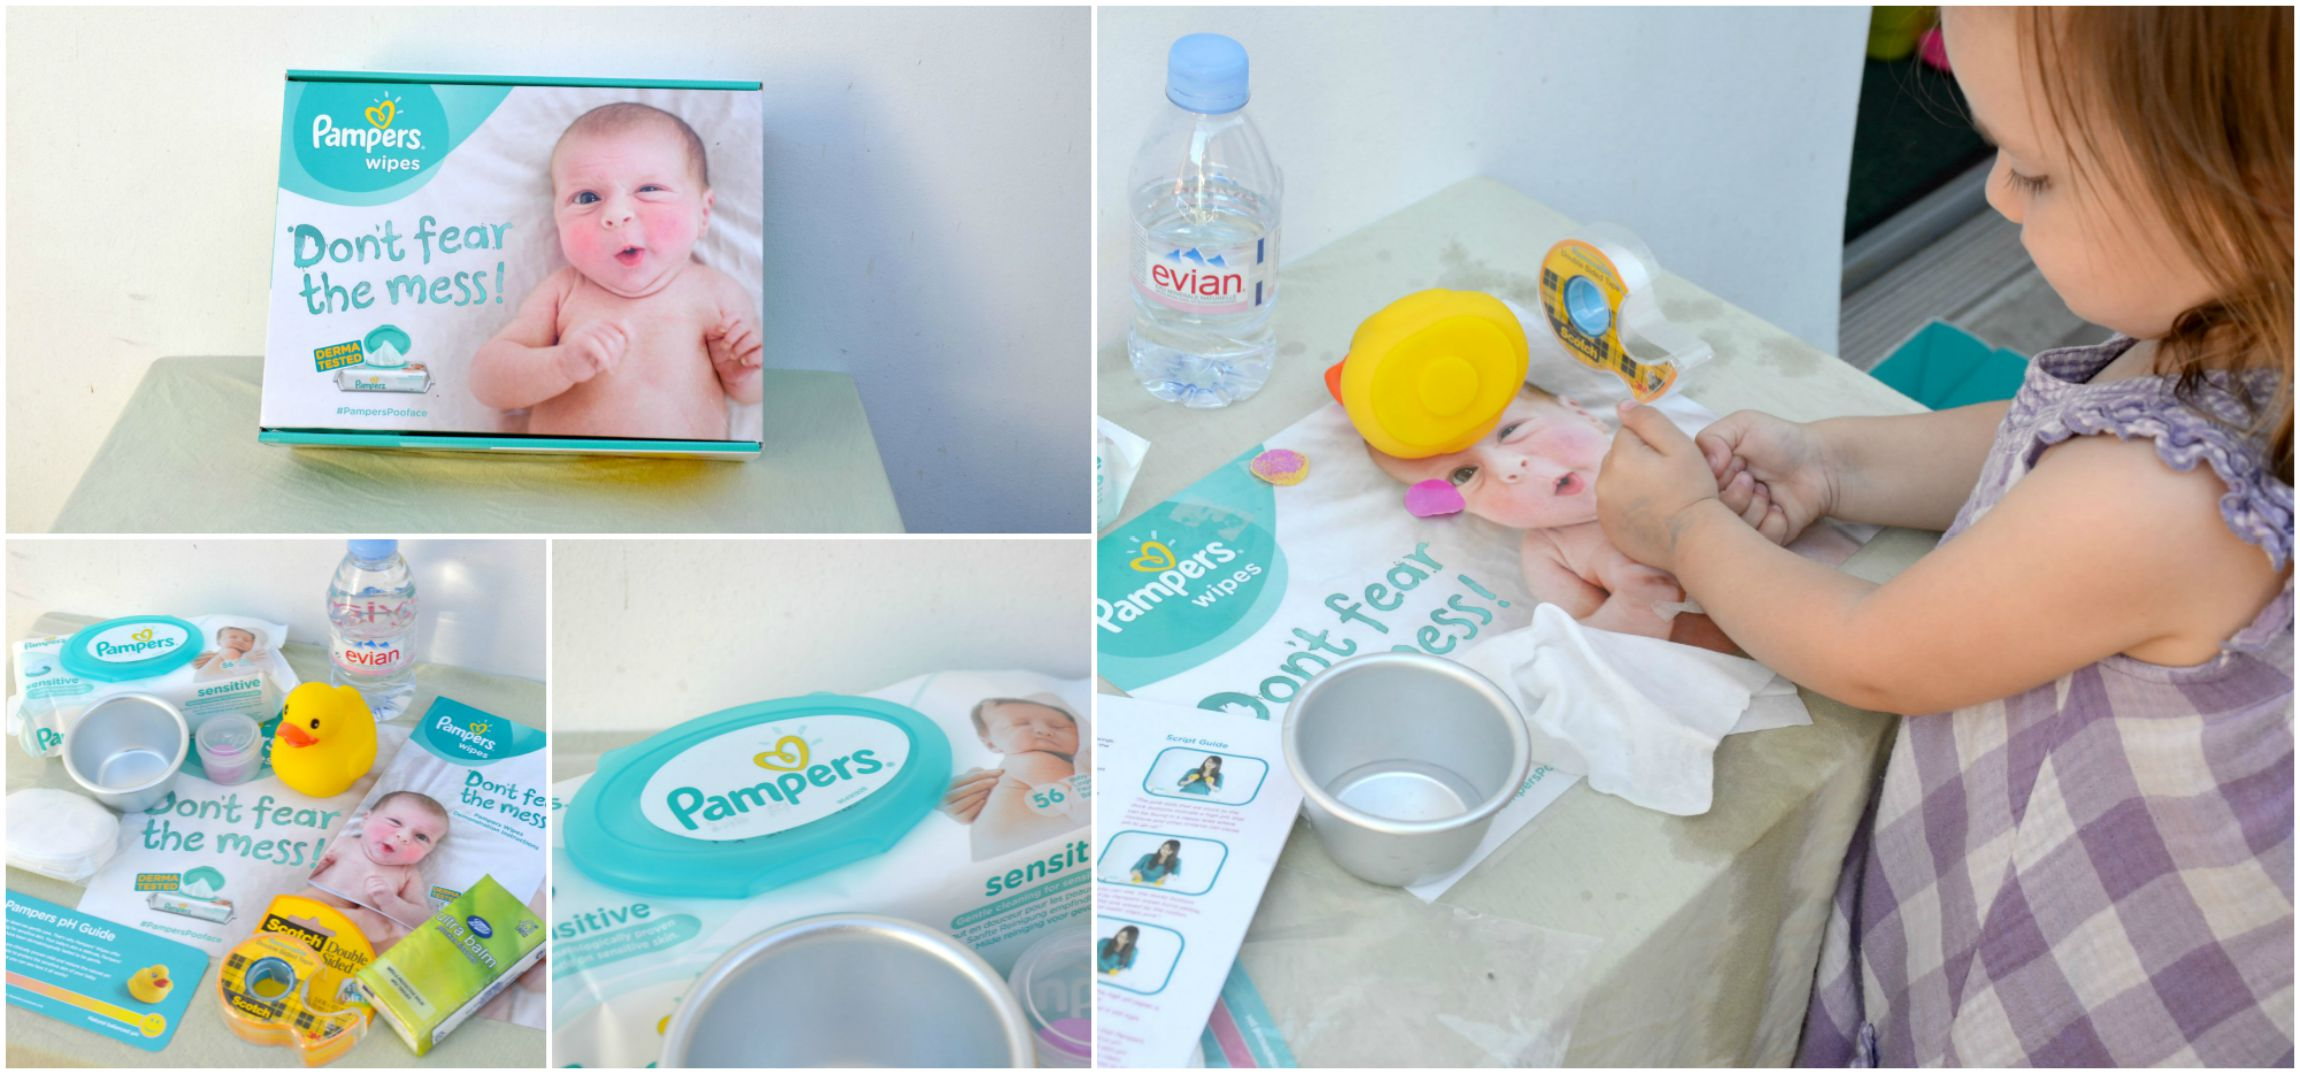 pampers pooface equipment